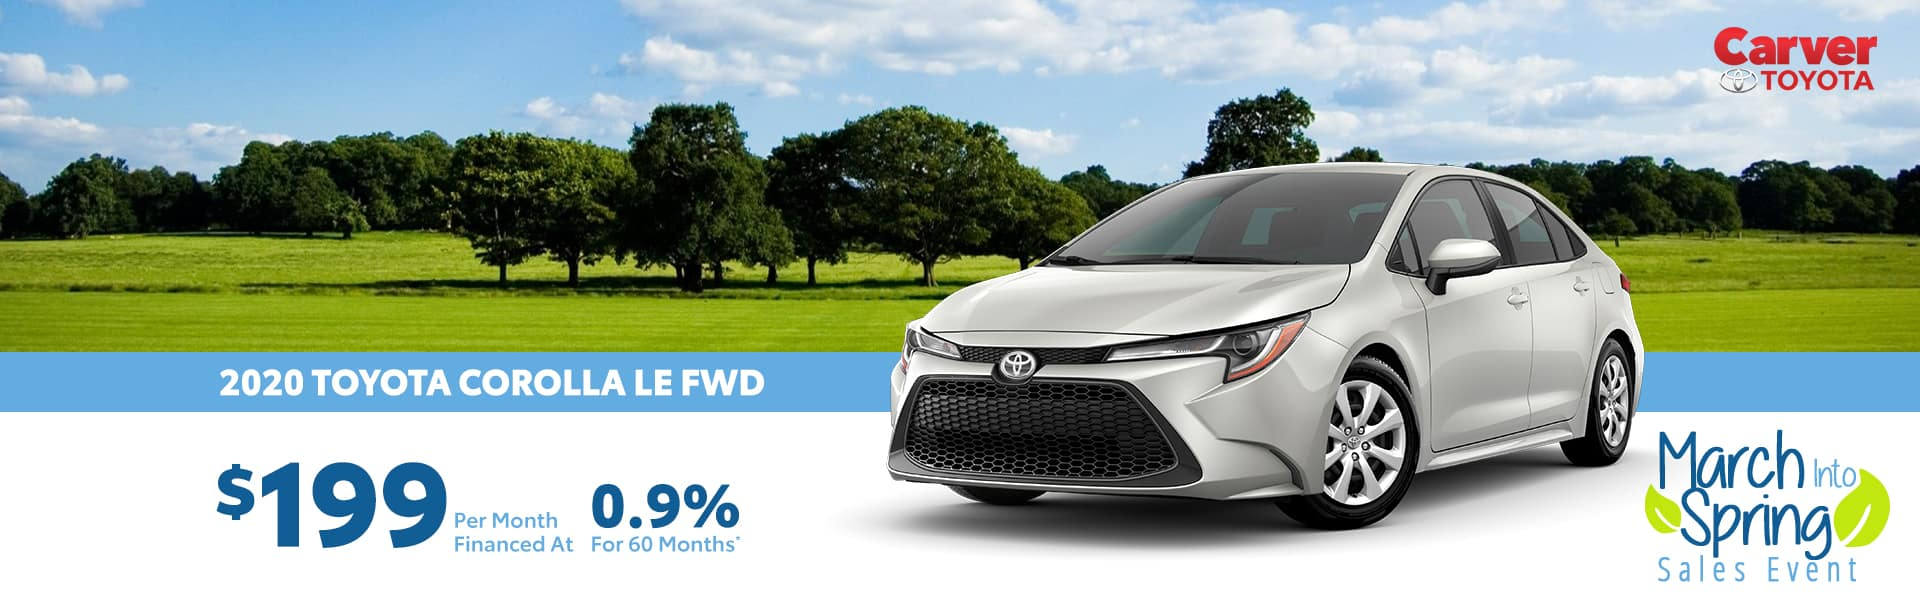 Finance a 2020 Corolla for $199 a month near Indianapolis, Indiana